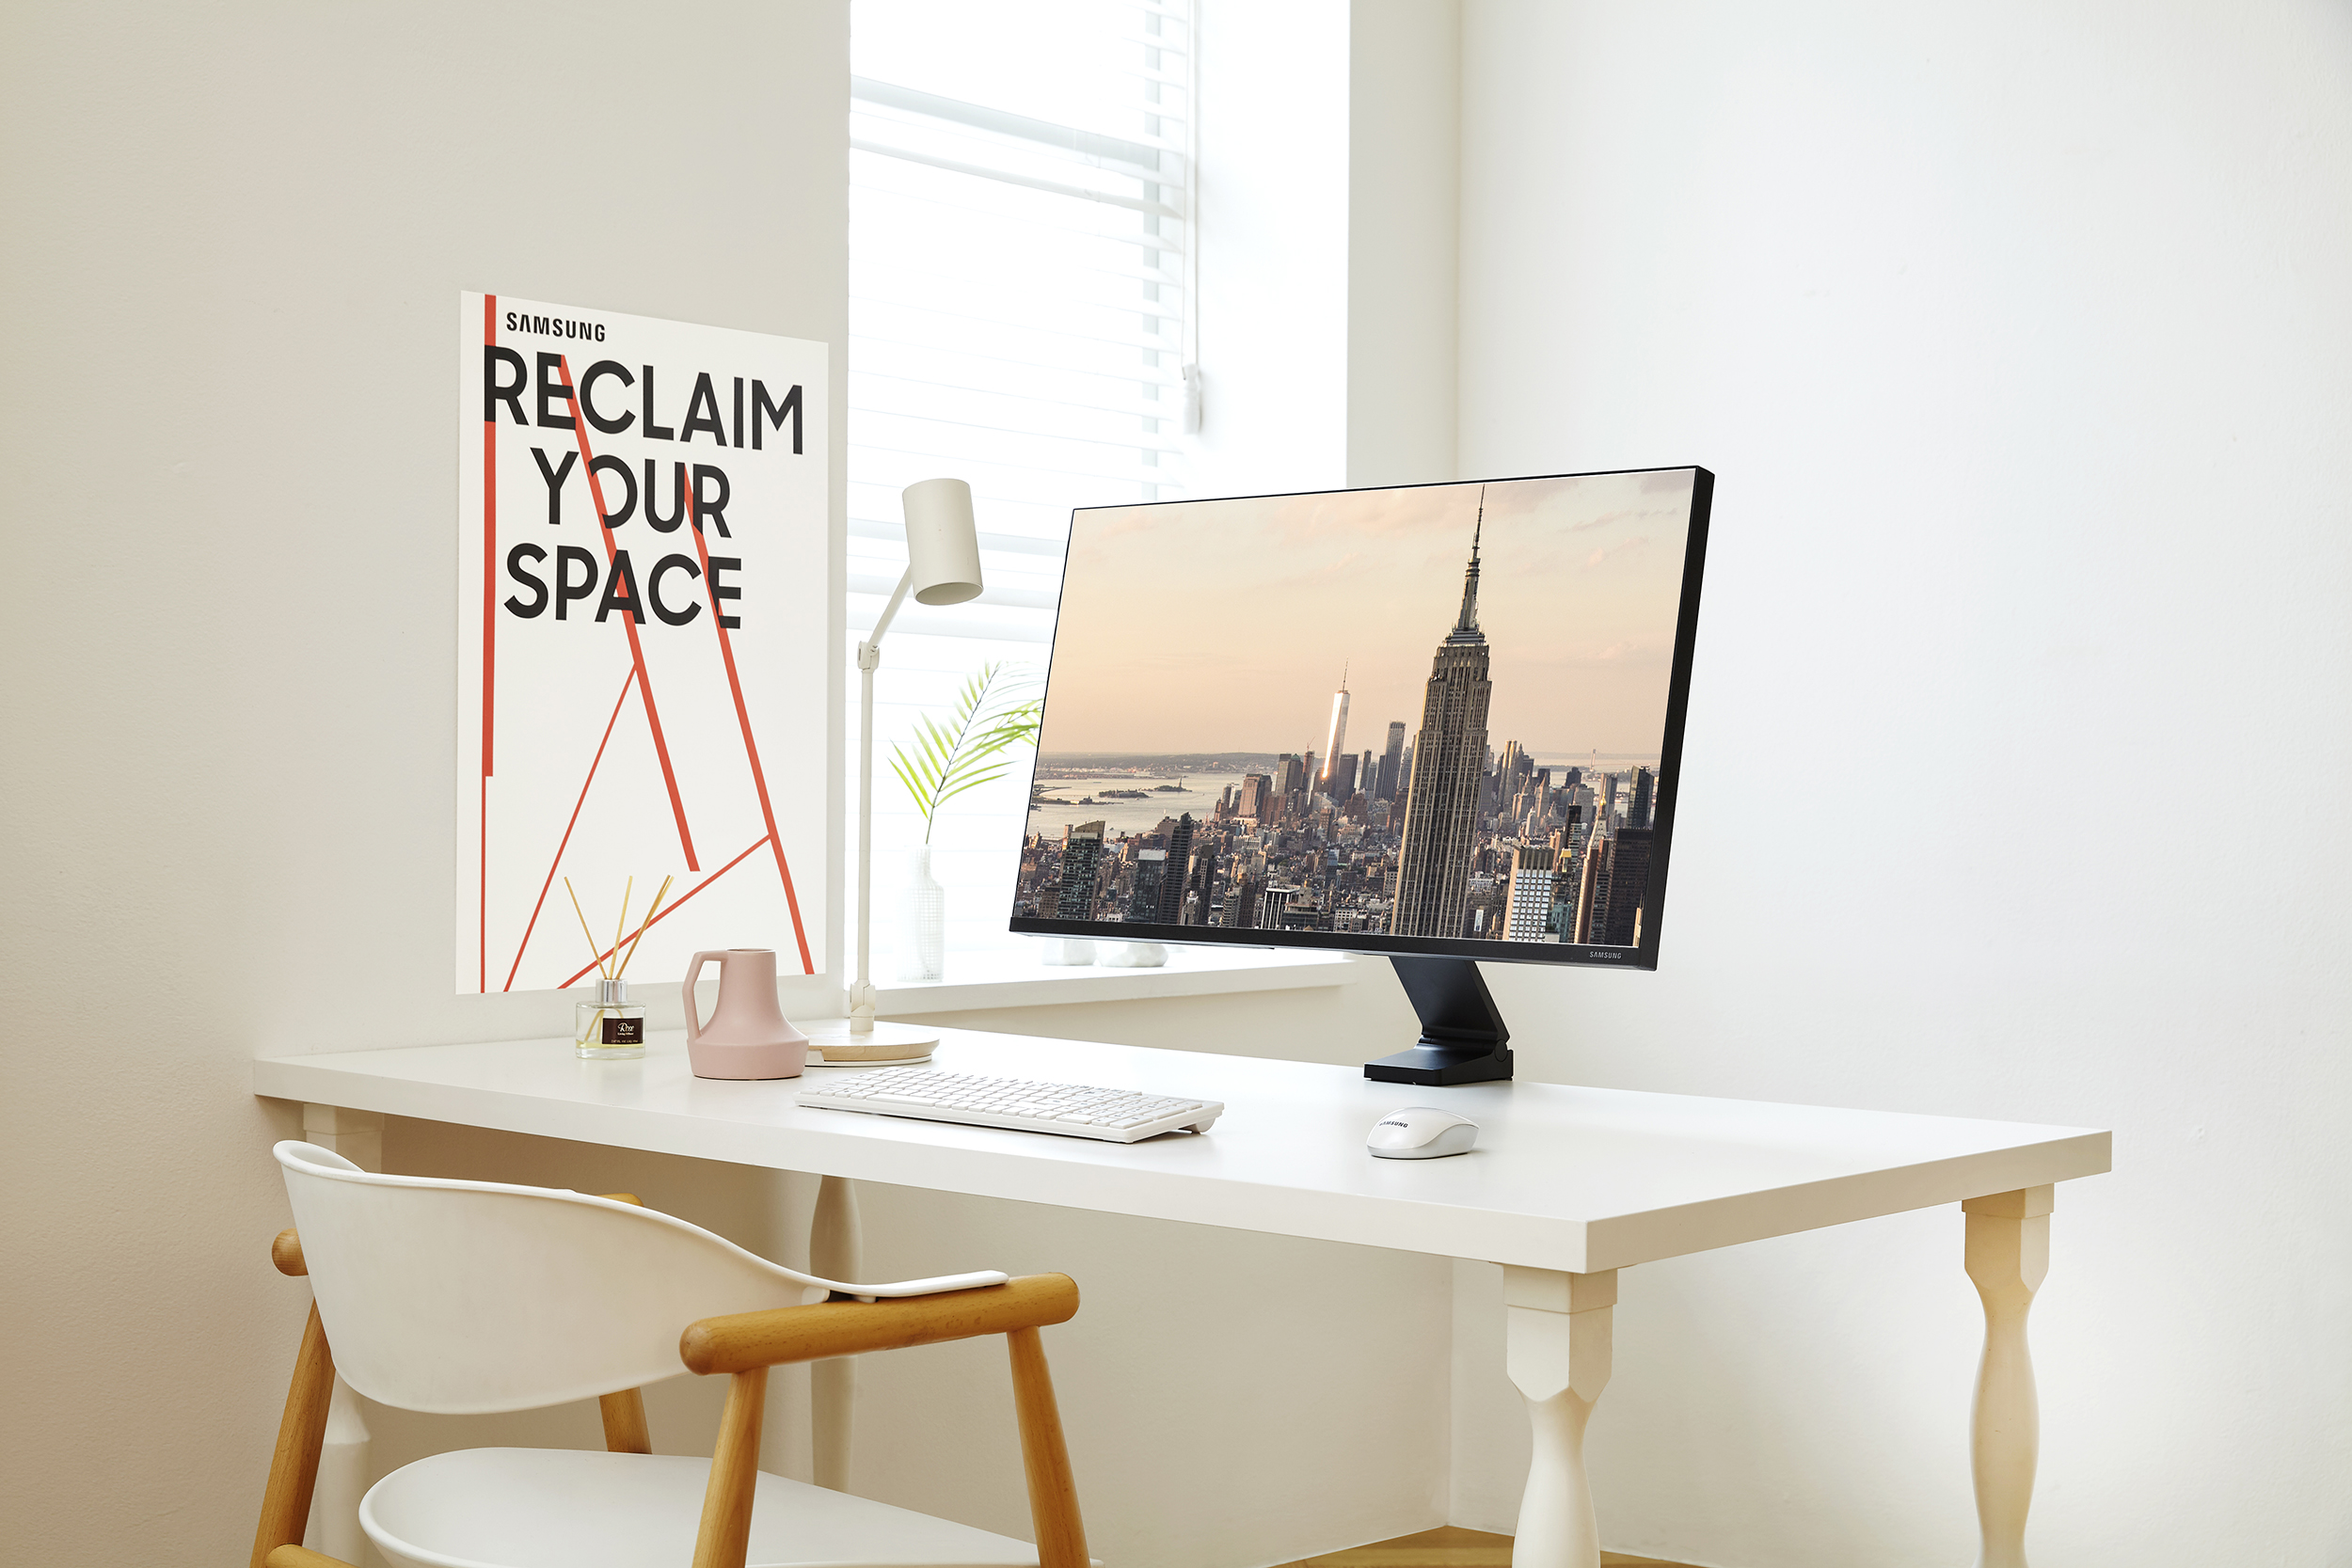 Samsung's New 2019 Monitors Announced Ahead of CES